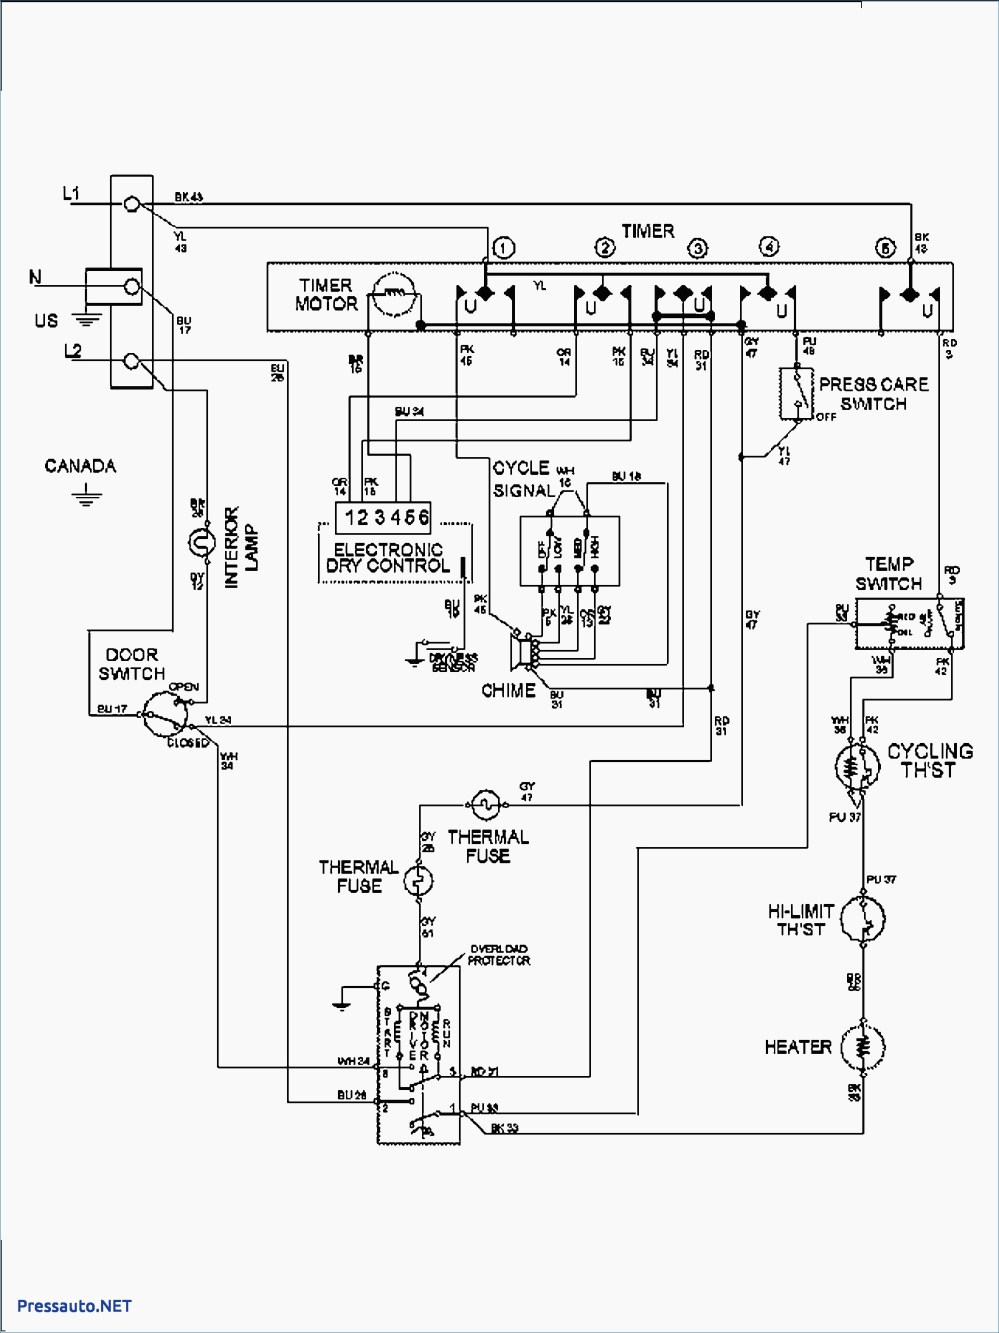 medium resolution of kitchen schematics wiring colors wiring library kitchen schematics wiring colors